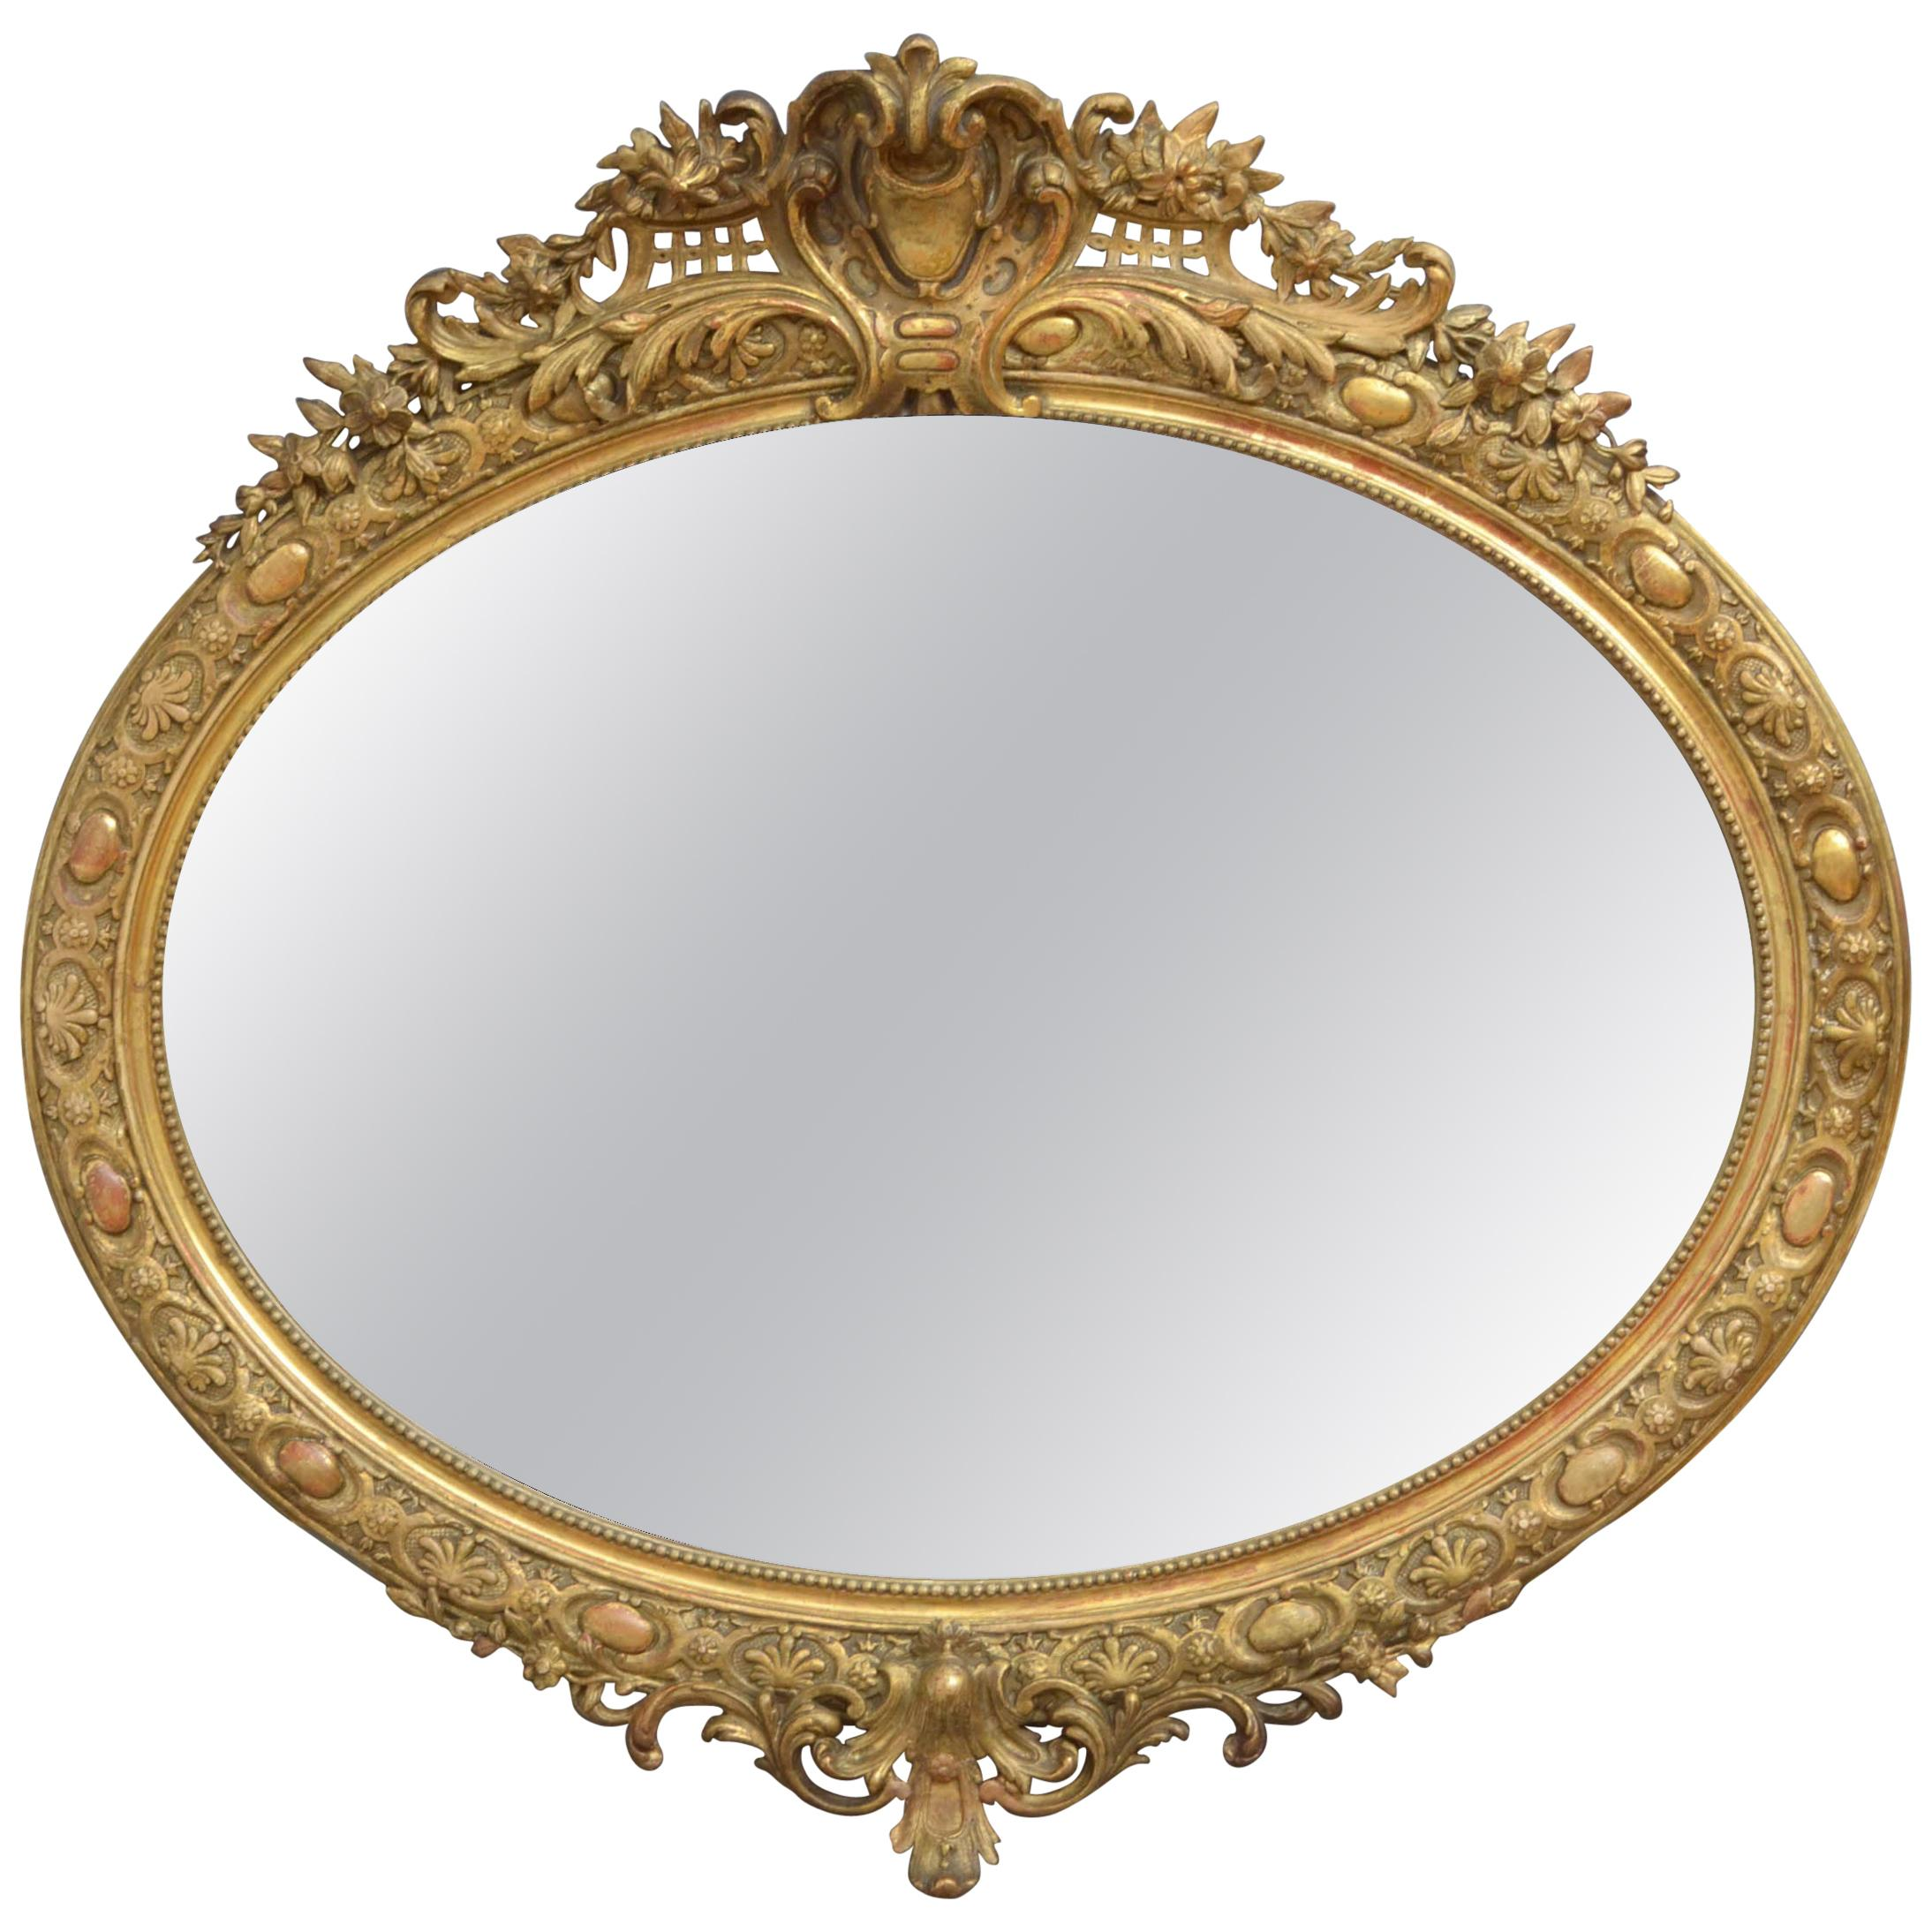 Large 19th Century Giltwood Wall Mirror